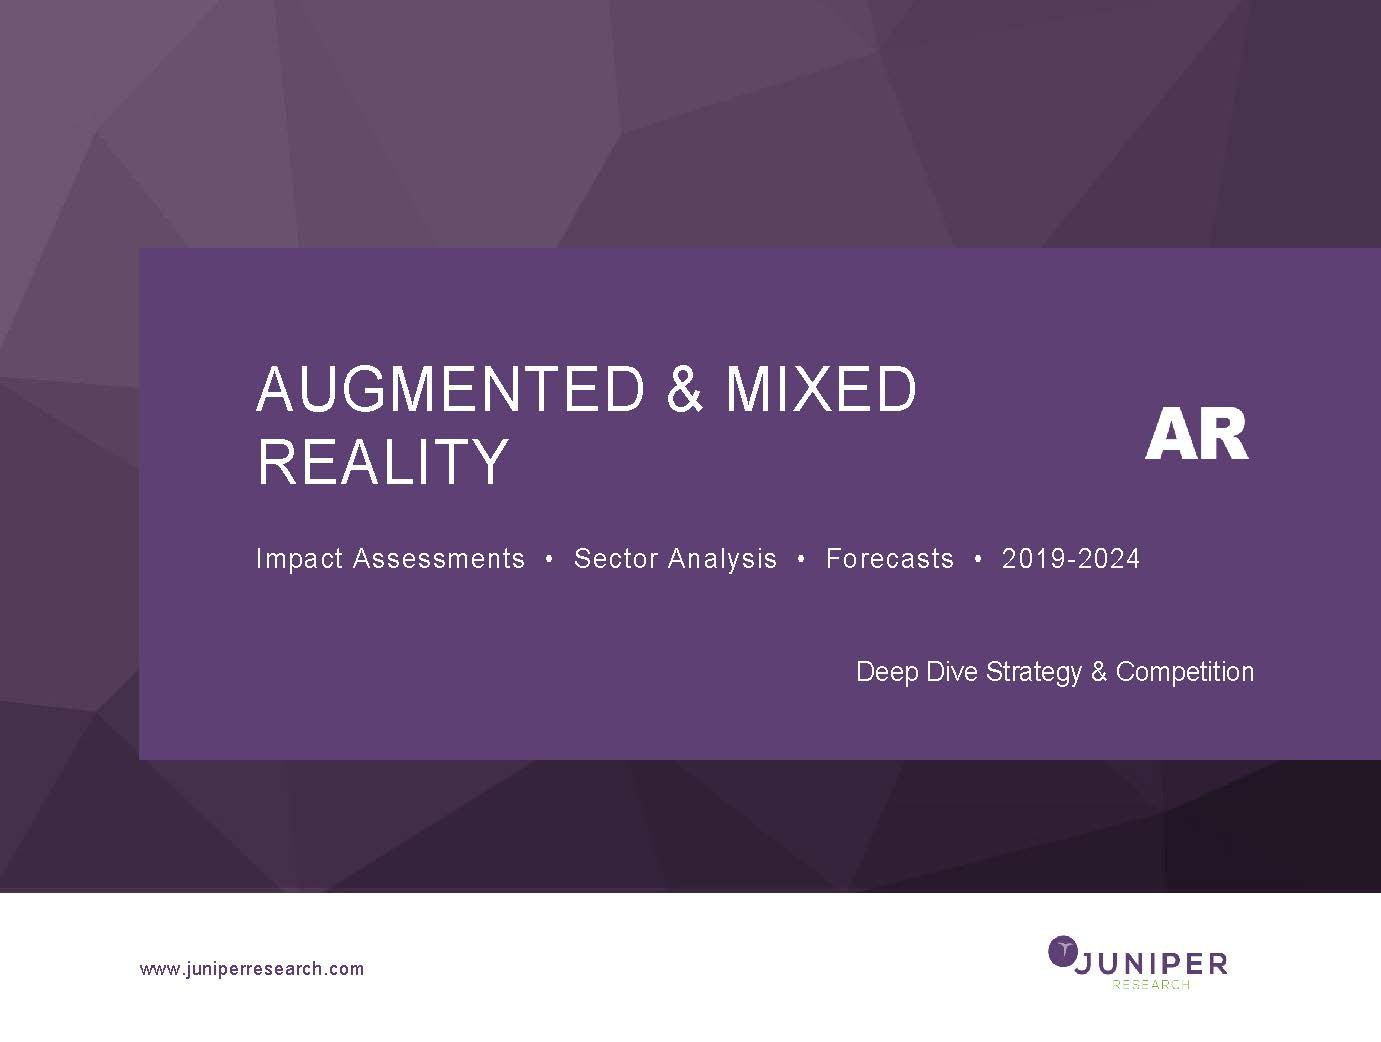 Augmented & Mixed Reality - Deep Dive Strategy & Competition 2019-2024